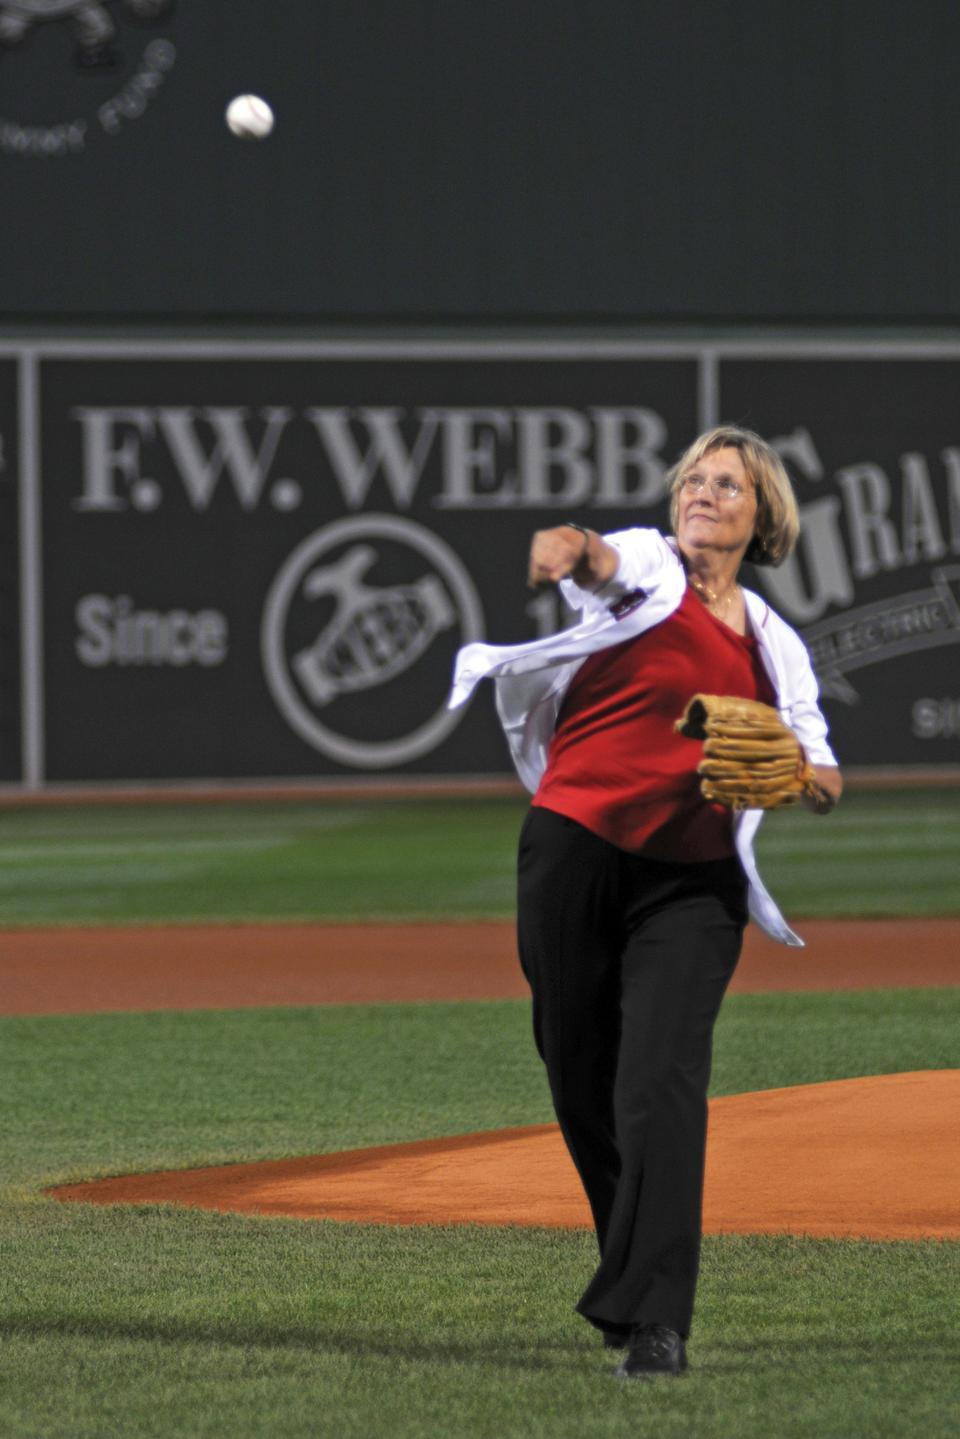 """During """"Harvard Night"""" at Fenway Park yesterday, the Boston Red Sox honored members of the Harvard community in front of a filled stadium. President Drew G. Faust, the Kuumba Singers, student athletes, and several college graduates were recognized before the Red Sox took on the Baltimore Orioles."""